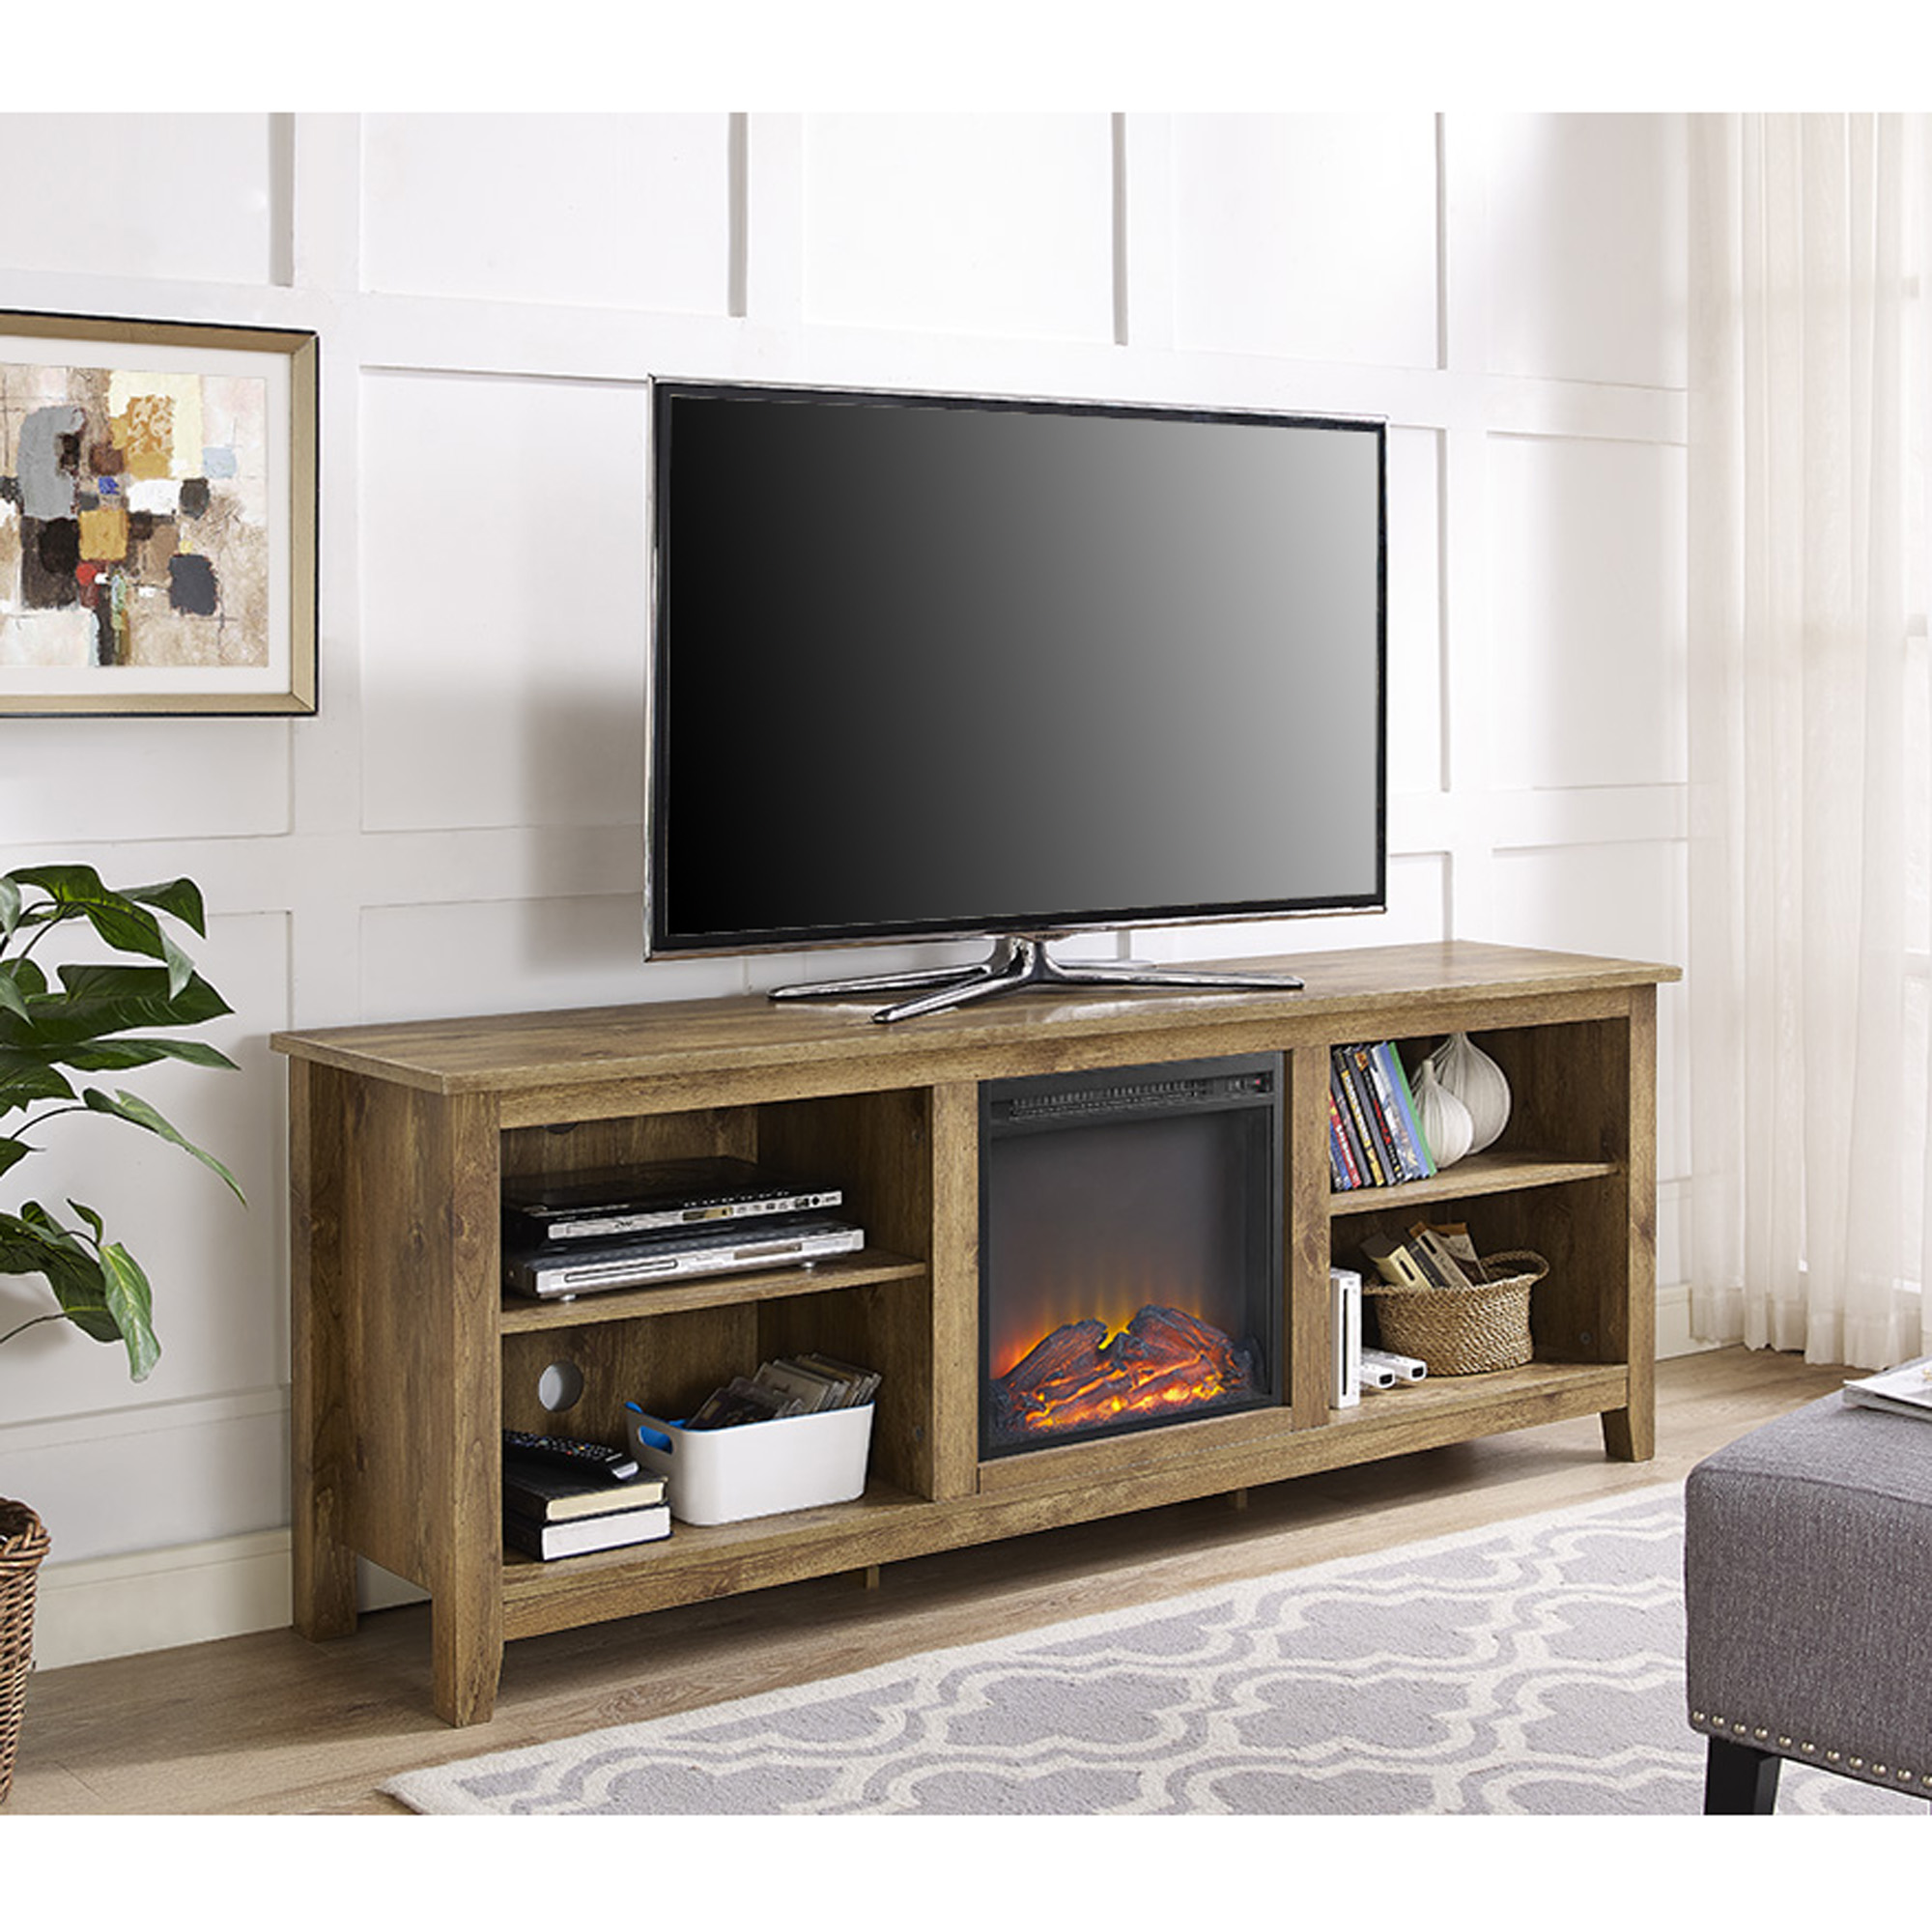 "70"" Fireplace TV Media Storage Stand for TV's up to 75"", Barnwood"